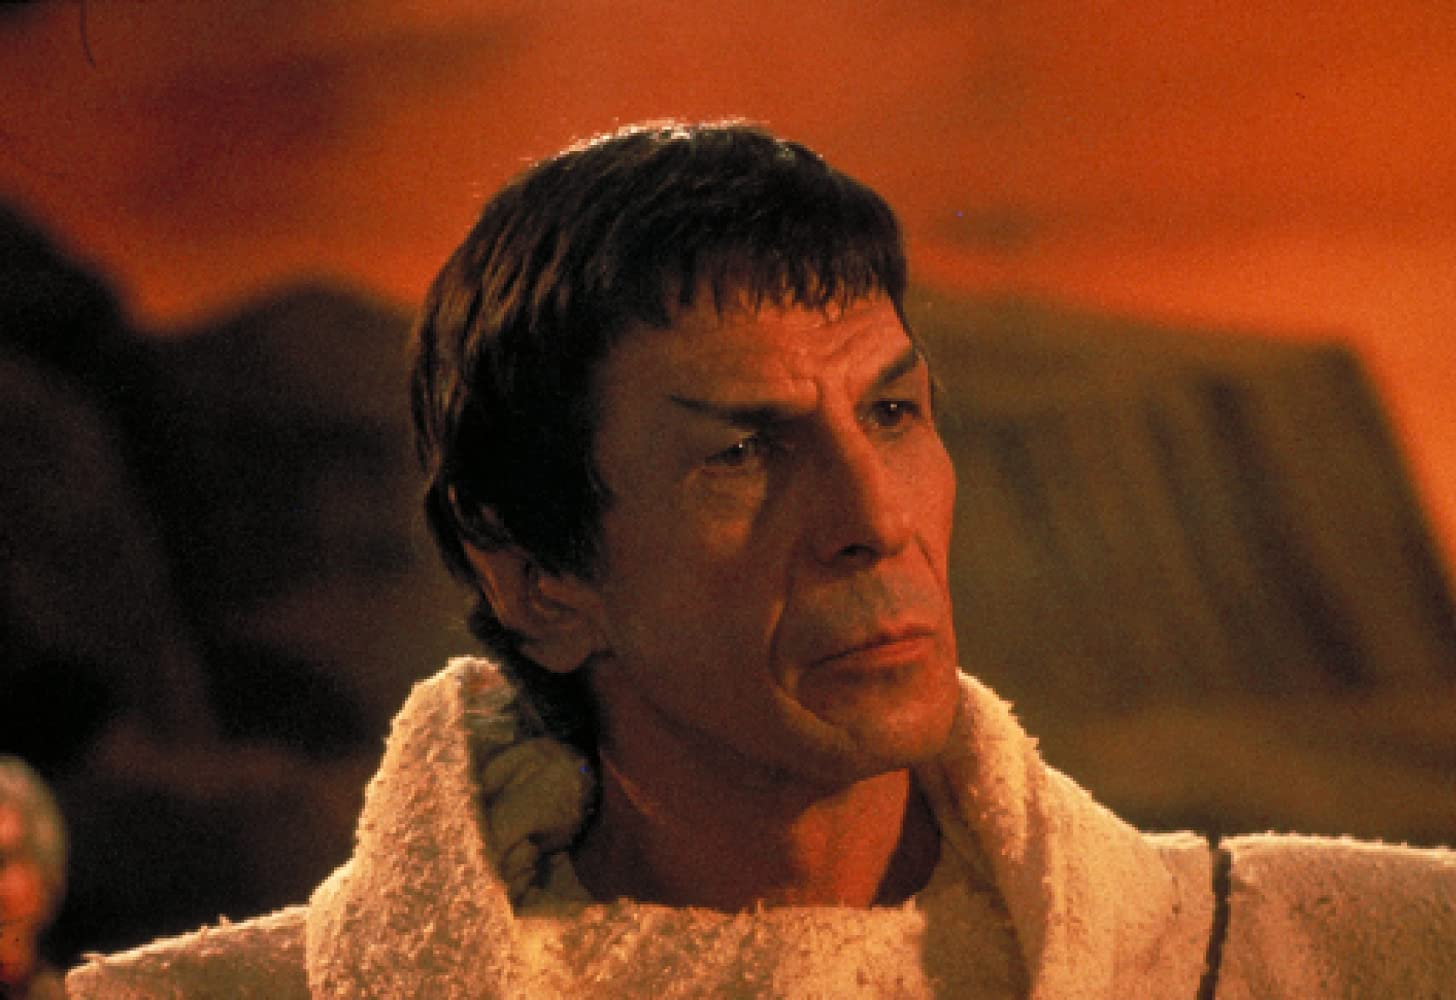 Leonard Nimoy in Star Trek III The Search for Spock 1984